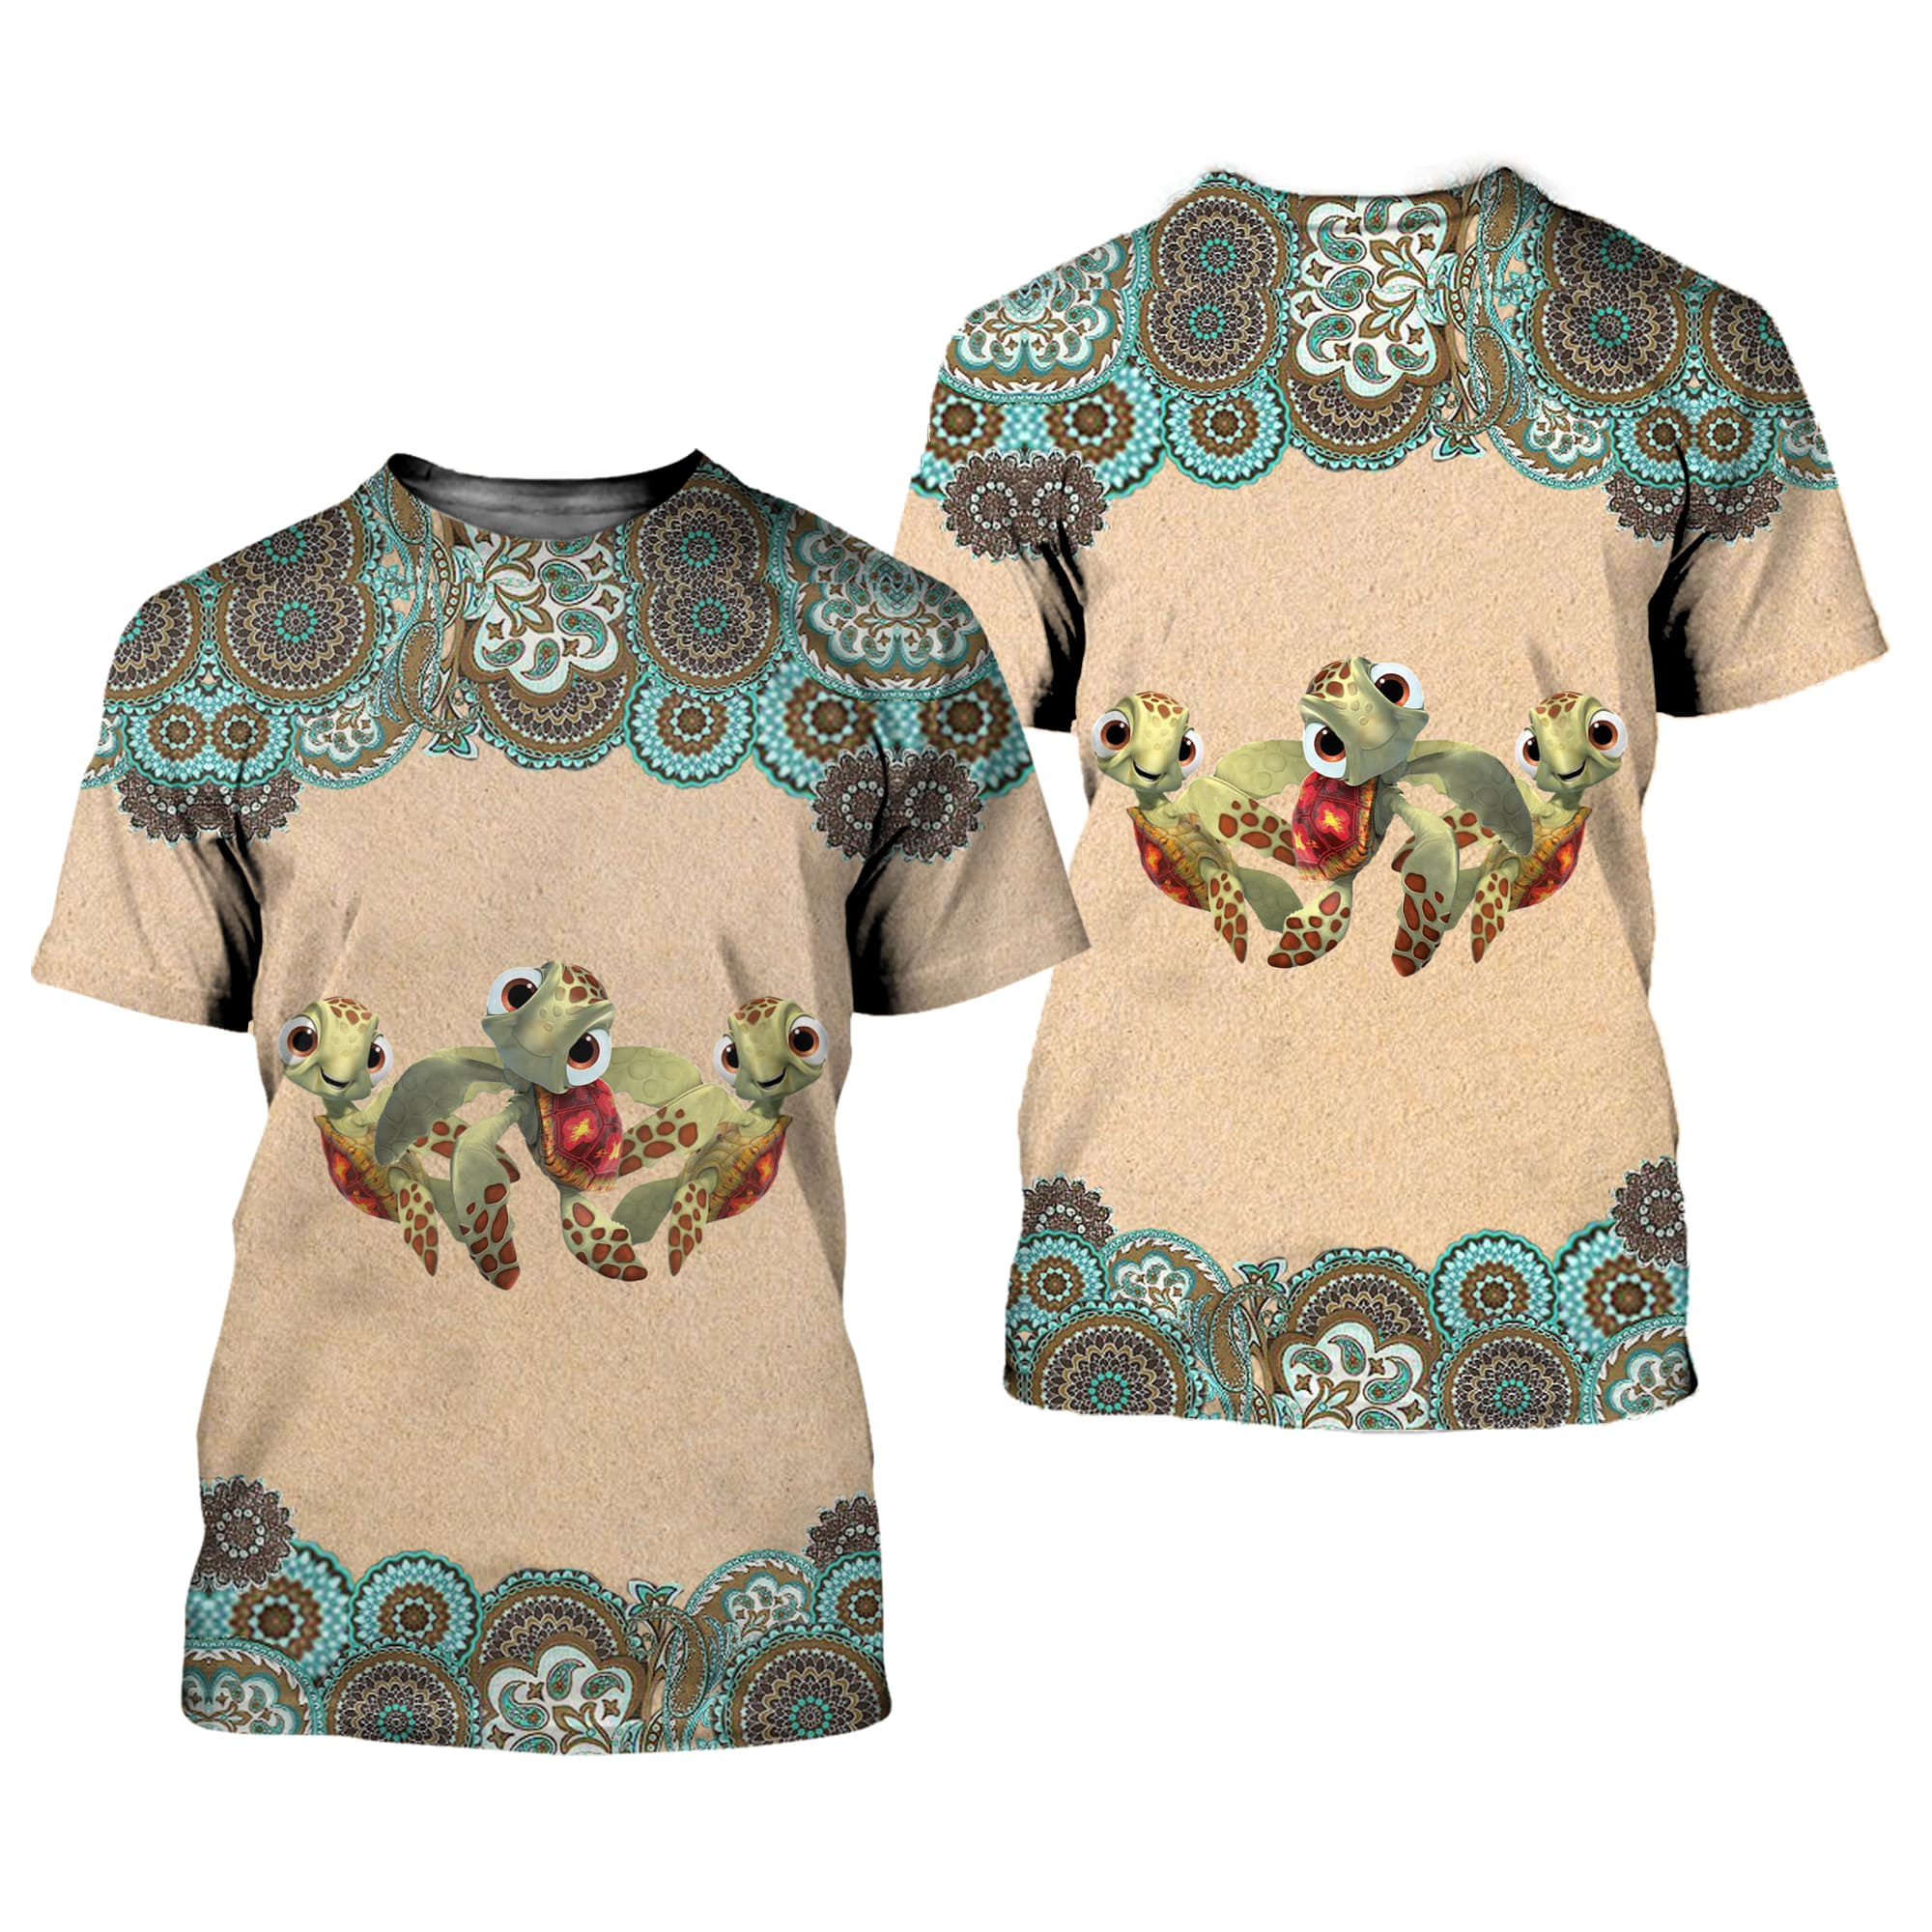 Nemo Turtle 3D All Over Printed Shirts For Men And Women 52